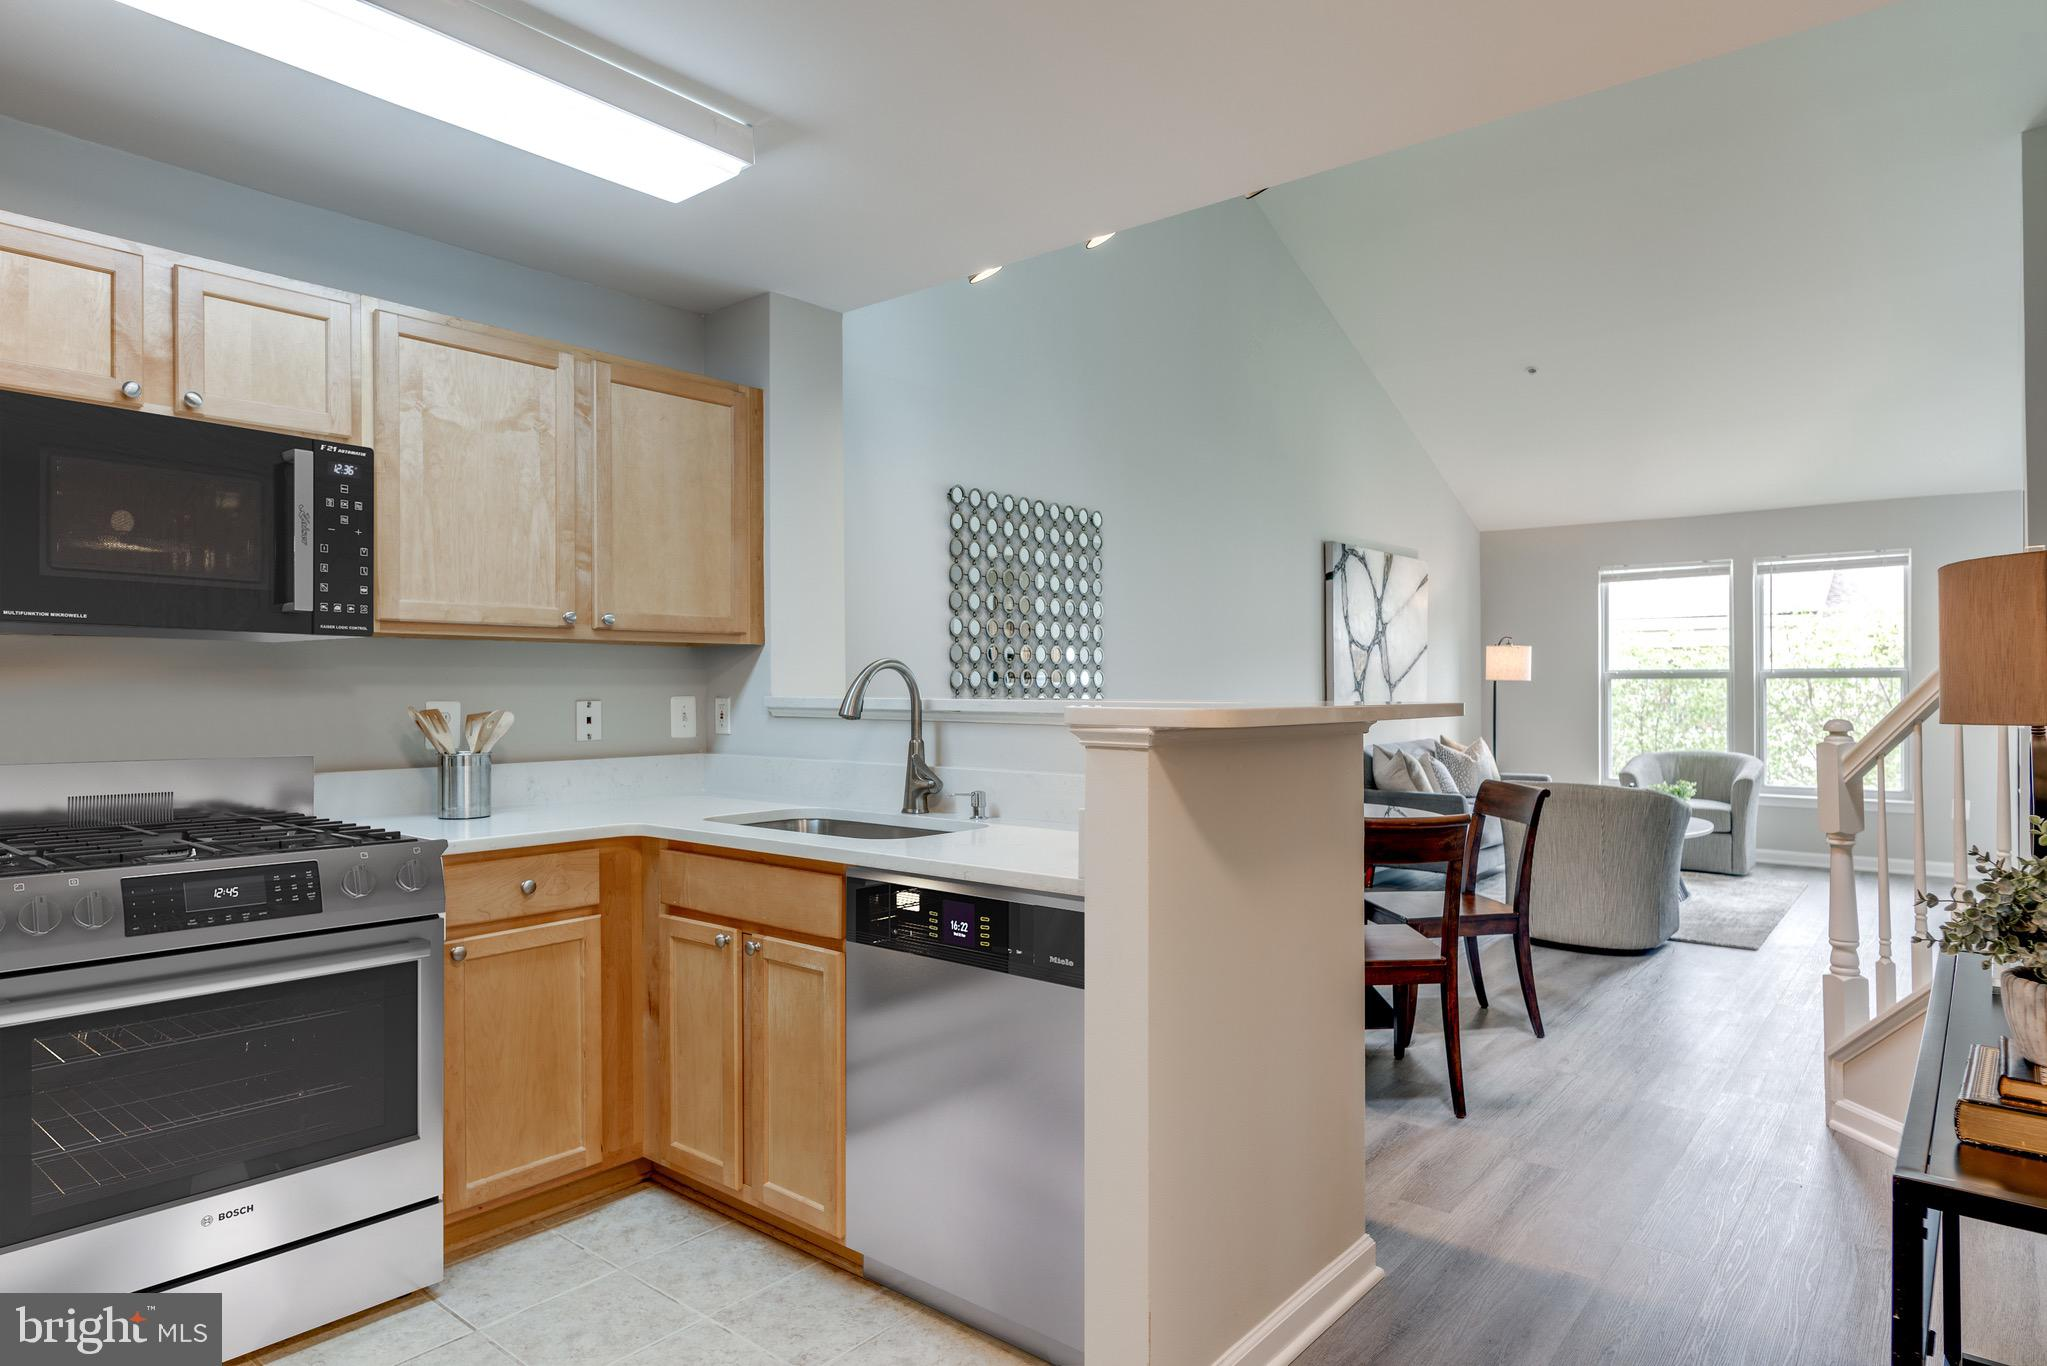 Must See Property in the Reston Town Center!!  [PLEASE NOTE: STAINLESS STEEL APPLIANCES HAVE BEEN ORDERED/PAID FOR AND WILL BE DELIVERED BY EARLY AUGUST] This tastefully renovated 1BR + den condo is quite spacious and offers lots of natural light. Featuring NEW quartz countertops in the kitchen & bath, NEW LVP flooring in living areas, NEW tile in bathroom, NEW carpet in the bedroom, NEW stainless steel appliances, NEW washer/ dryer, NEW water heater, NEW HVAC & a fresh coat of paint throughout.  This property has it all.  In addition to the covered deck for a comfortable outdoor experience, the condo has a spacious upper level that can be used for an office, tv room or even a guest room.  The location is superb being in the Reston Town Center with dozens of shops, restaurants, CVS and more.  Very close to the future metro rail station.  This won't last long!